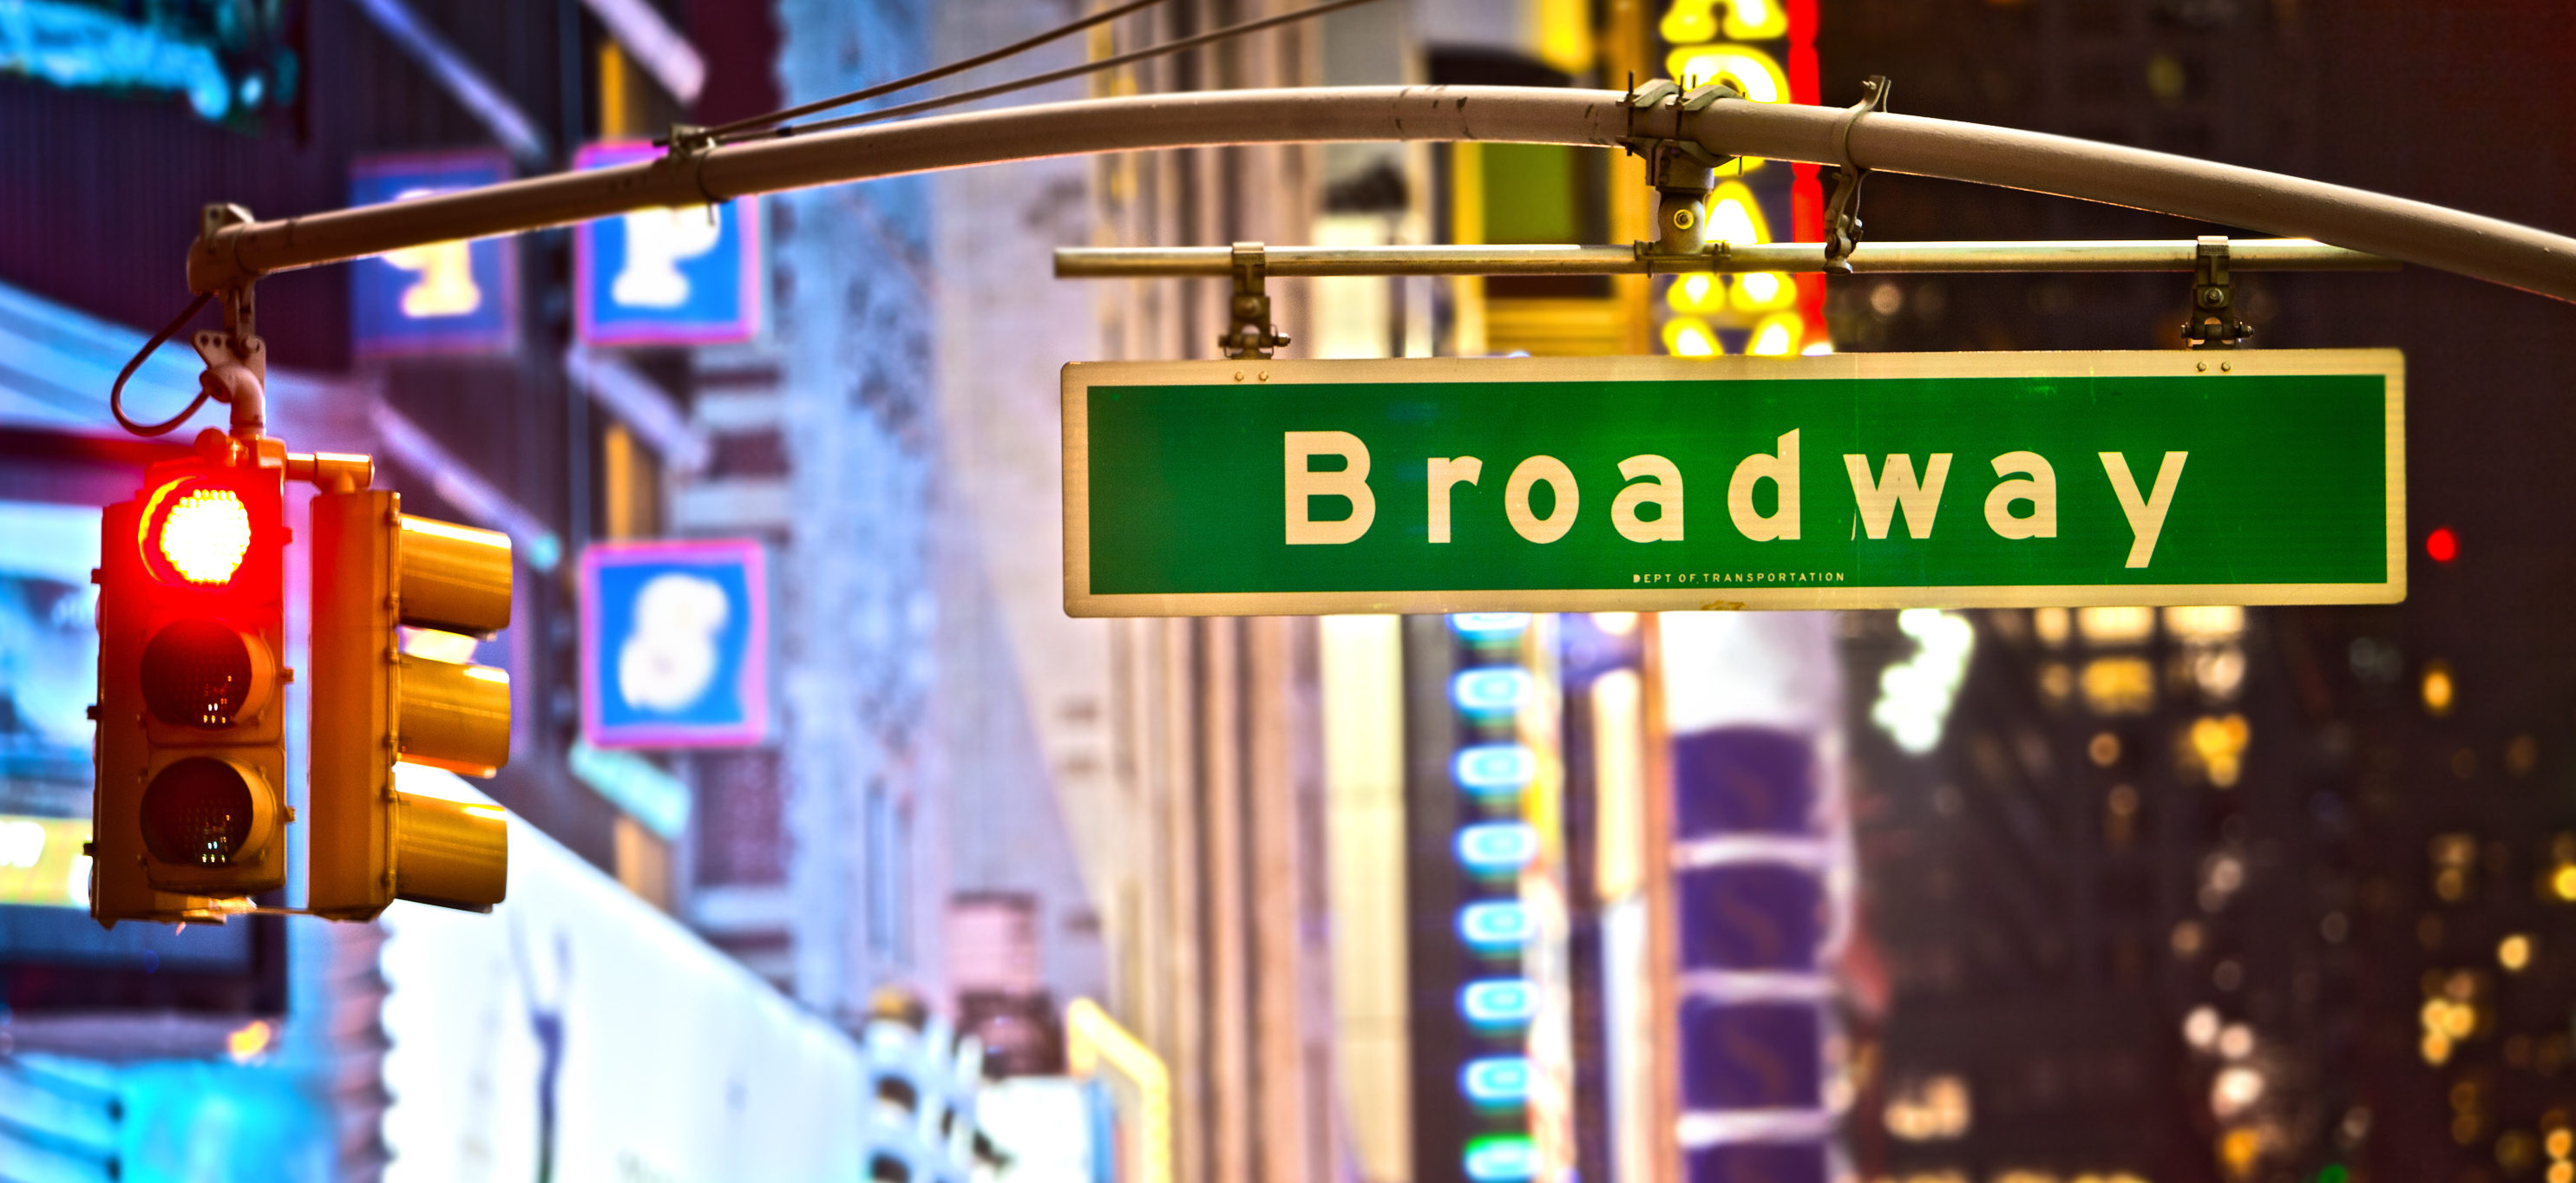 Broadway sign and red stop light in New York City at night. (Shutterstock/Stuart Monk)